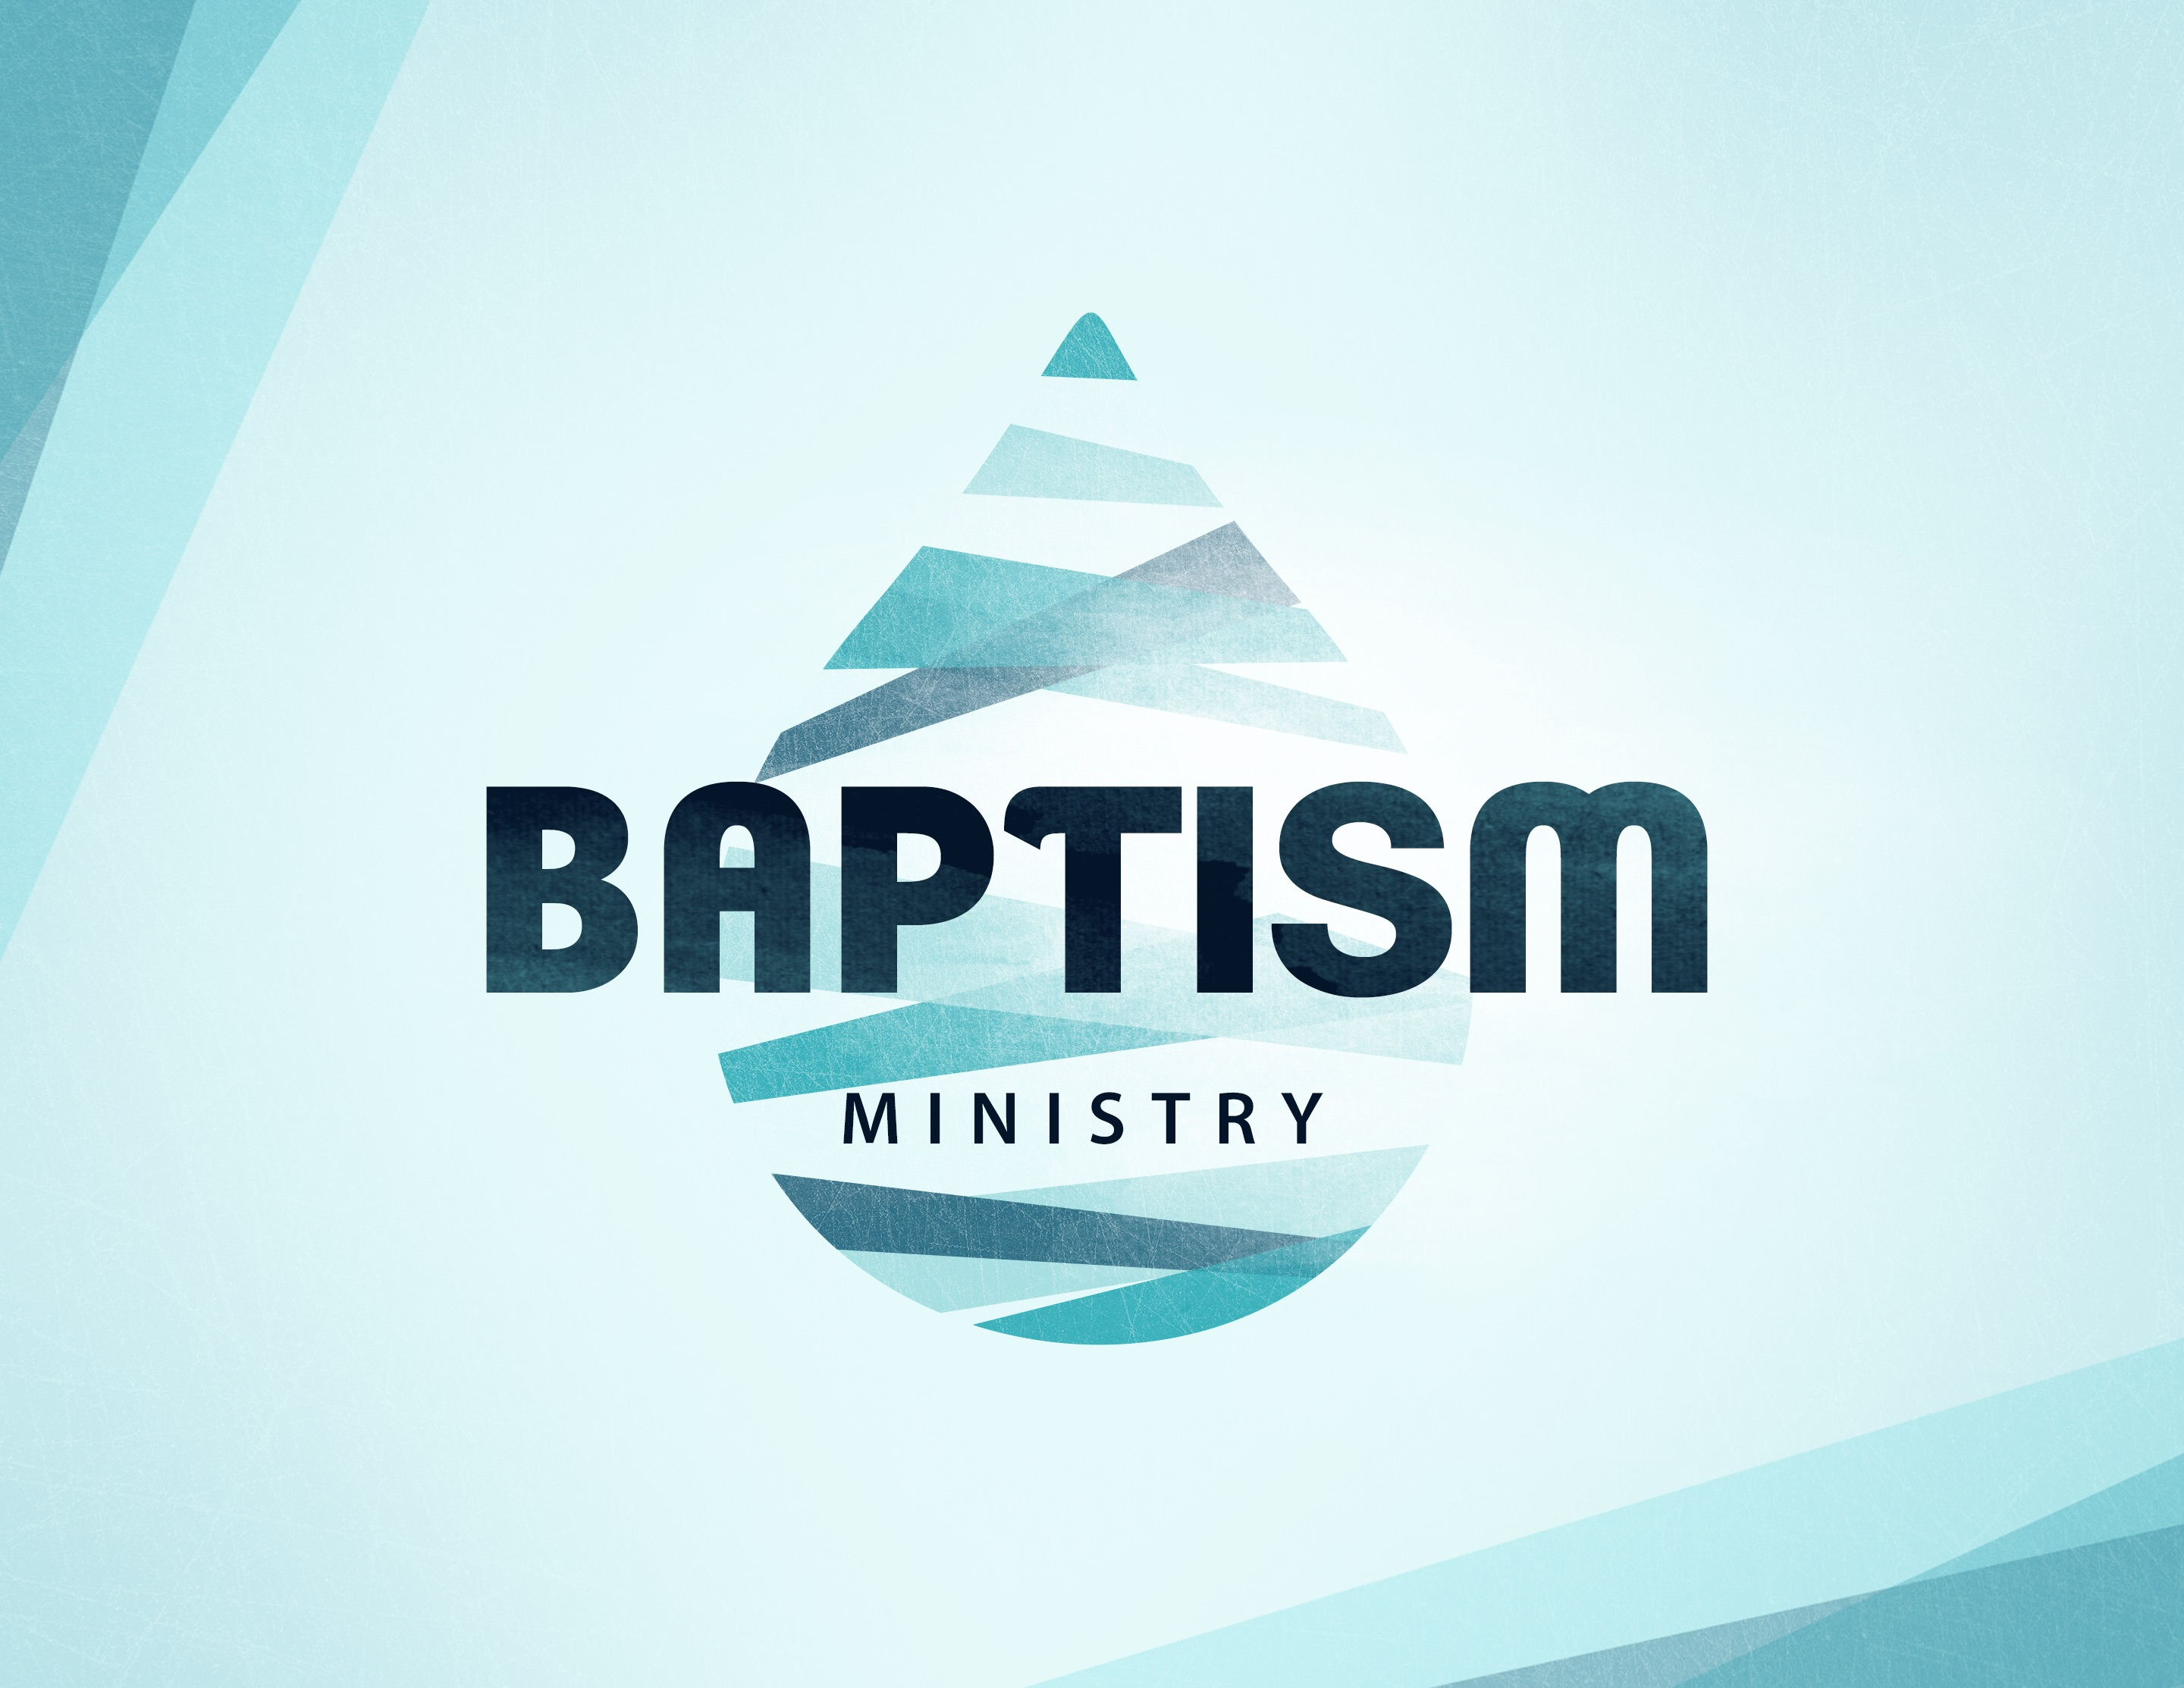 Baptism Ministry